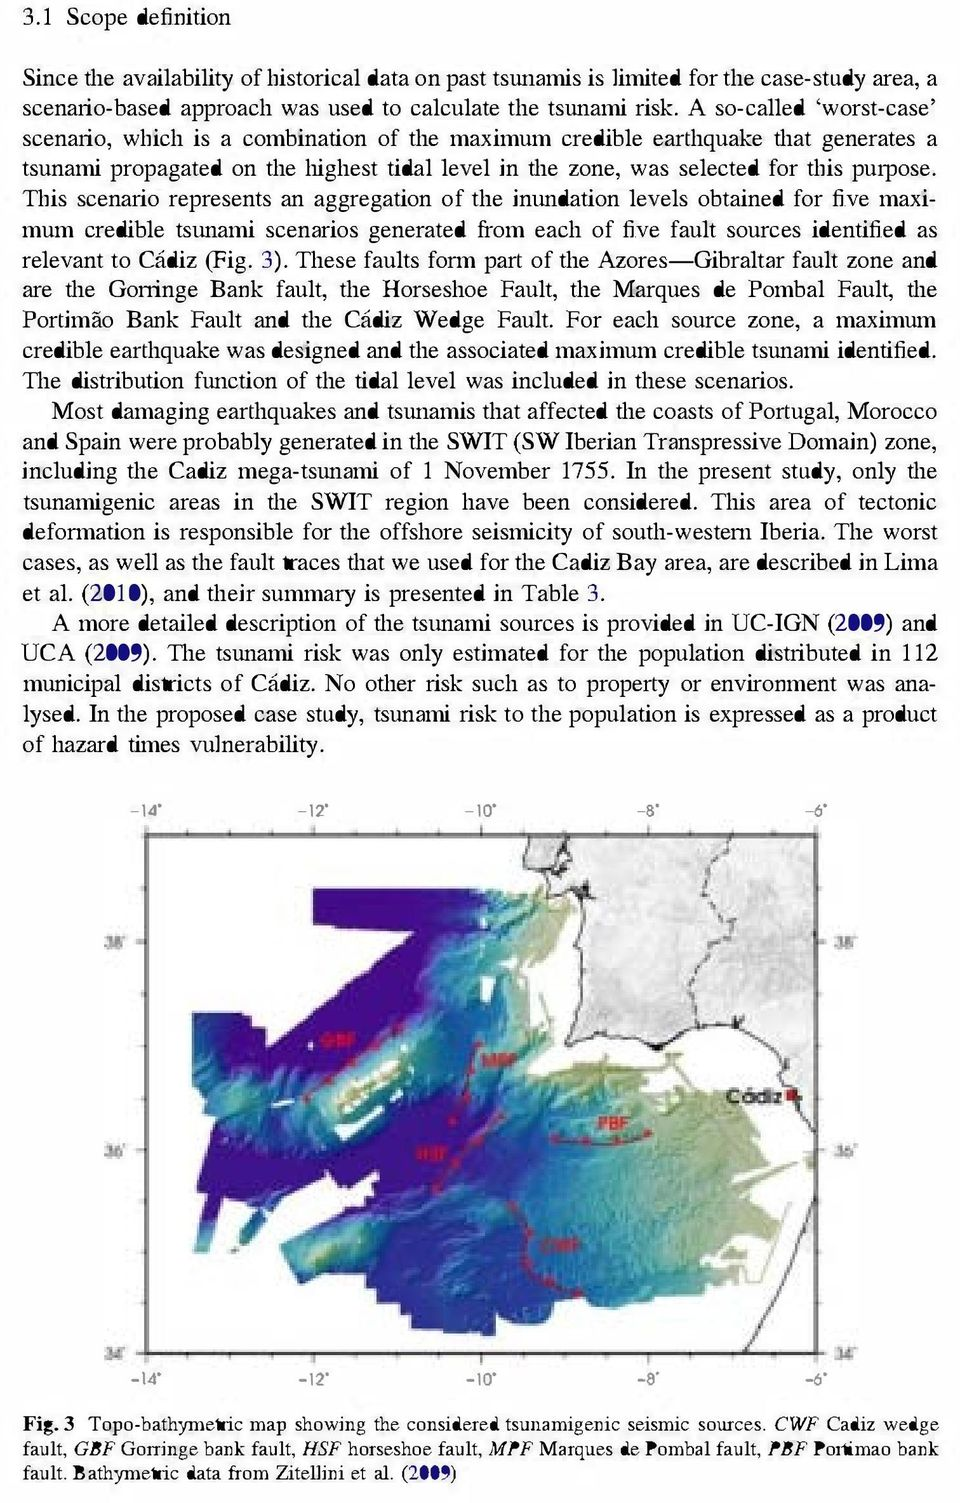 This scenario represents an aggregation of the inlllldation levels obtained for five maximum credible tsllllami scenarios generated from each of five fault sources identified as relevant to Cadiz